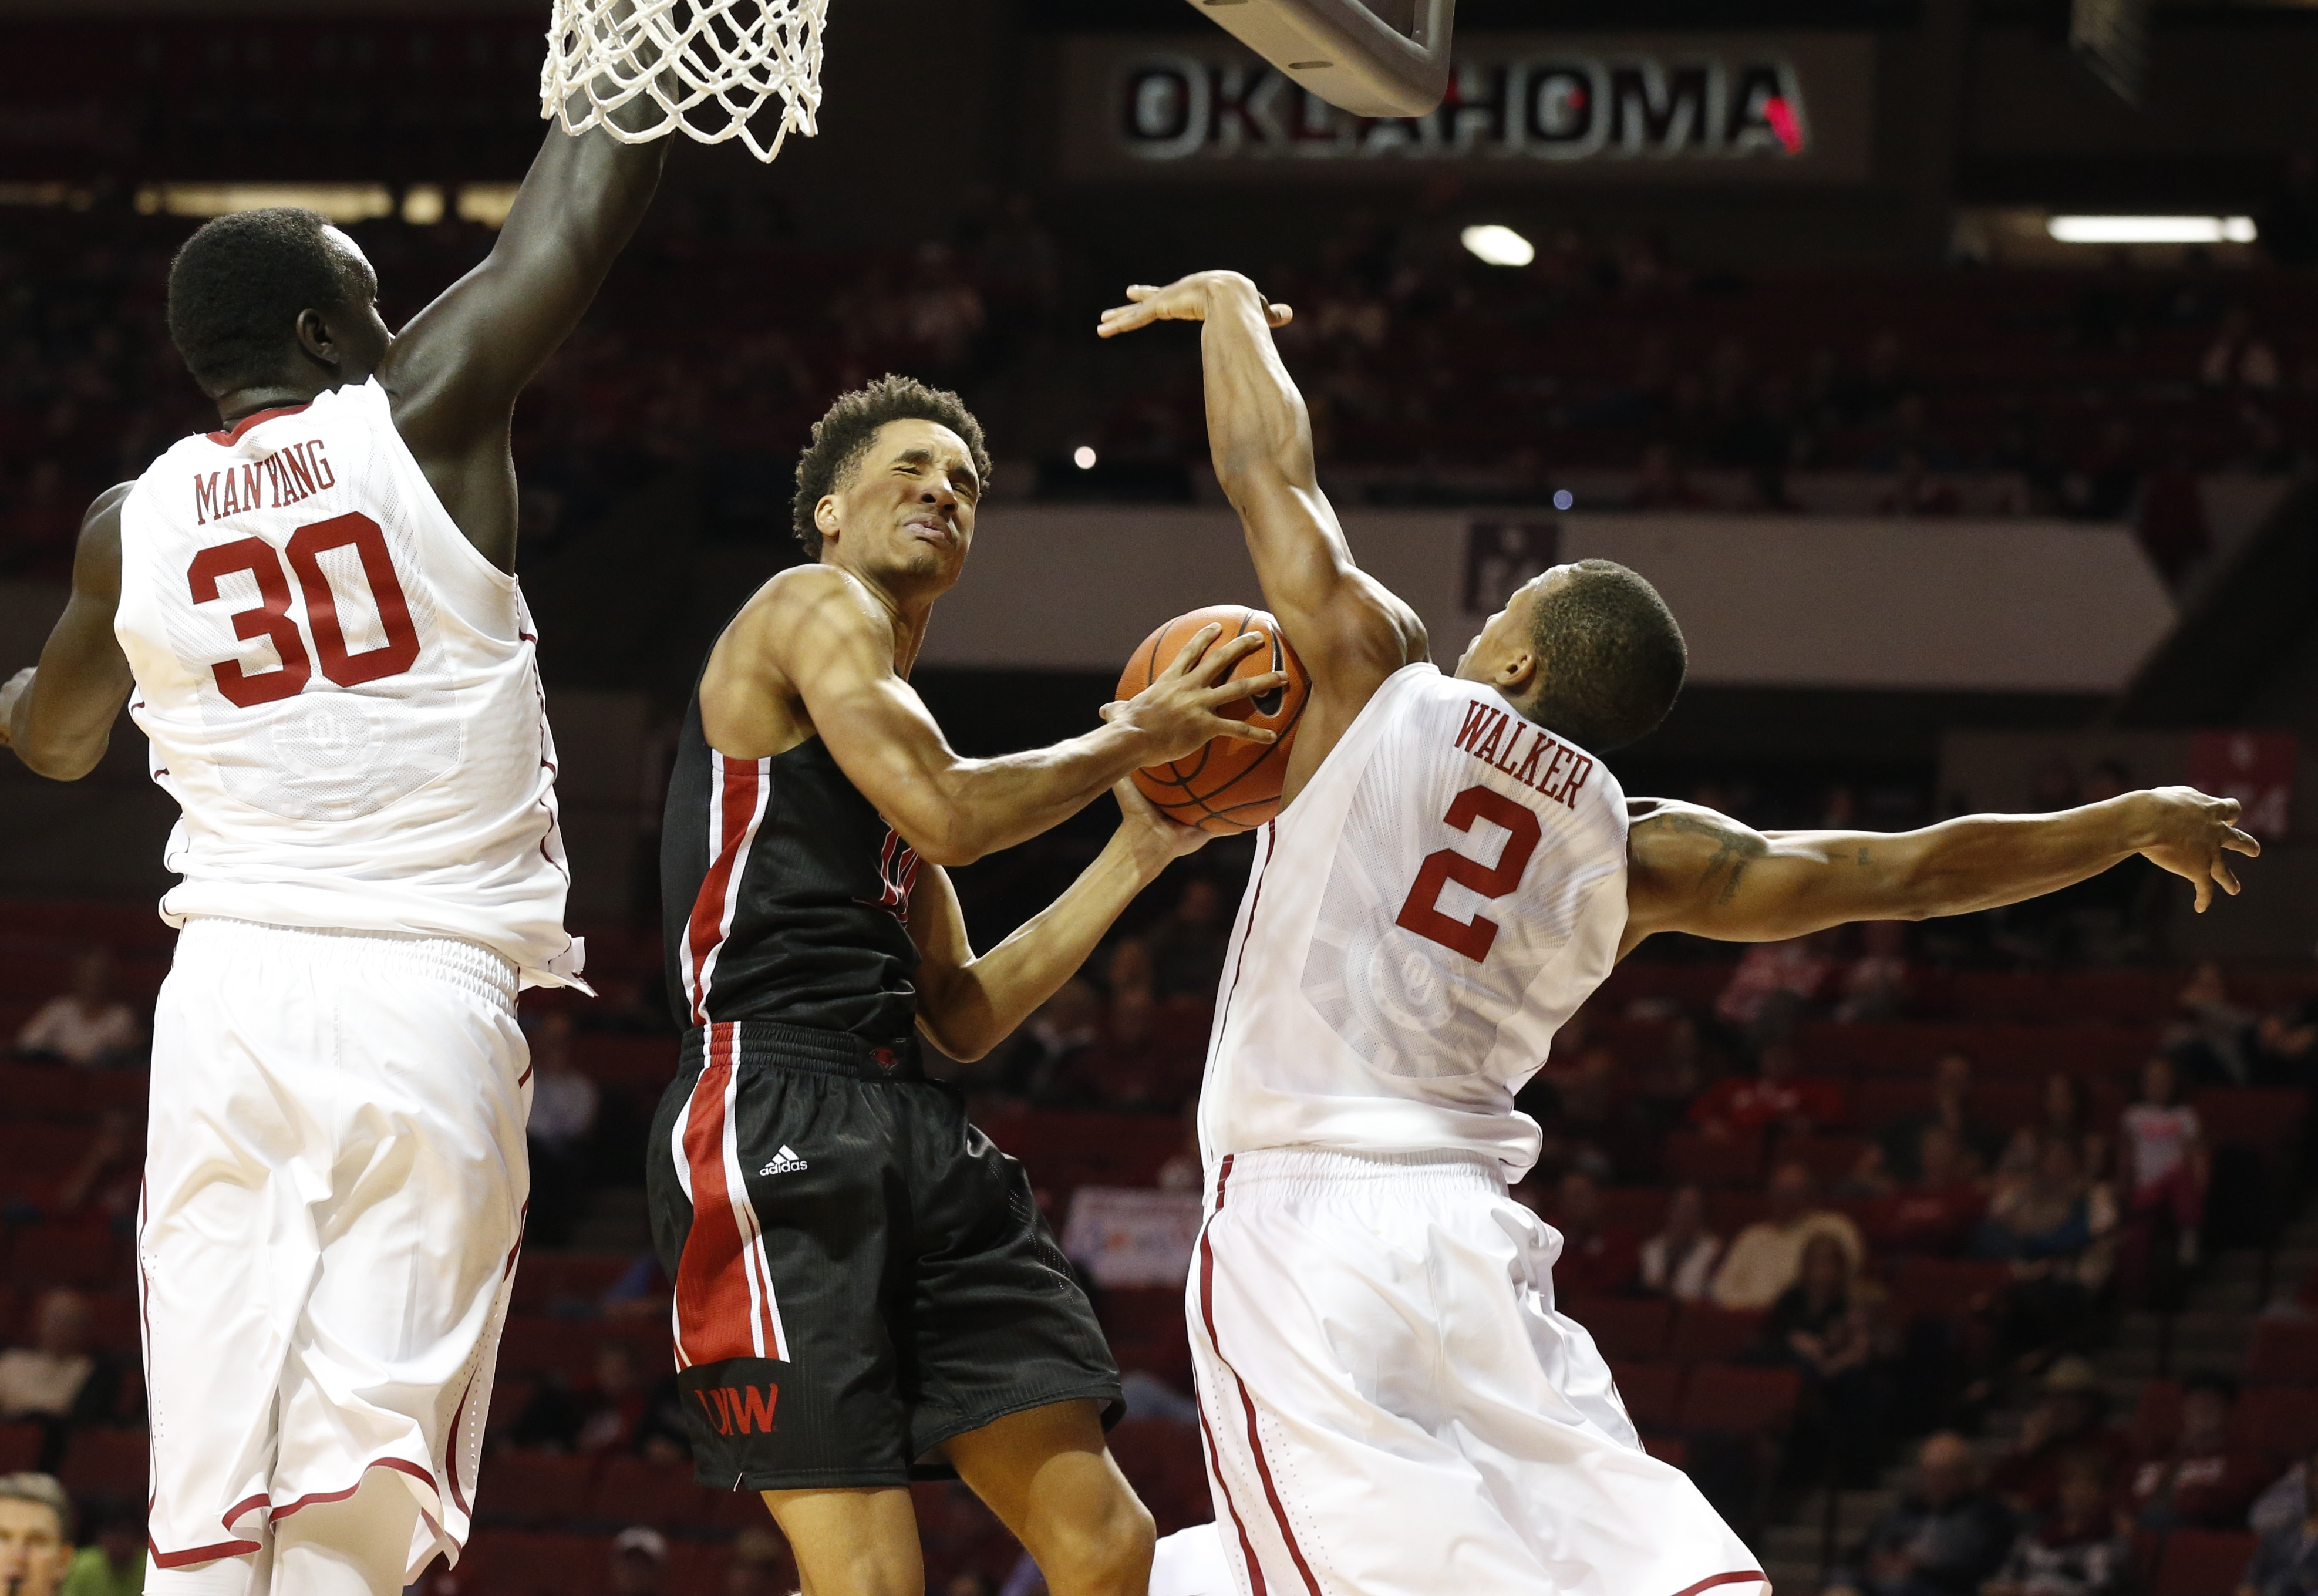 Incarnate Word guard Tyler Singleton, center, shoots between Oklahoma center Akolda Manyang (30) and guard Dinjiyl Walker (2) during the first half of an NCAA college basketball game in Norman, Okla., Tuesday, Nov. 24, 2015. (AP Photo/Sue Ogrocki)